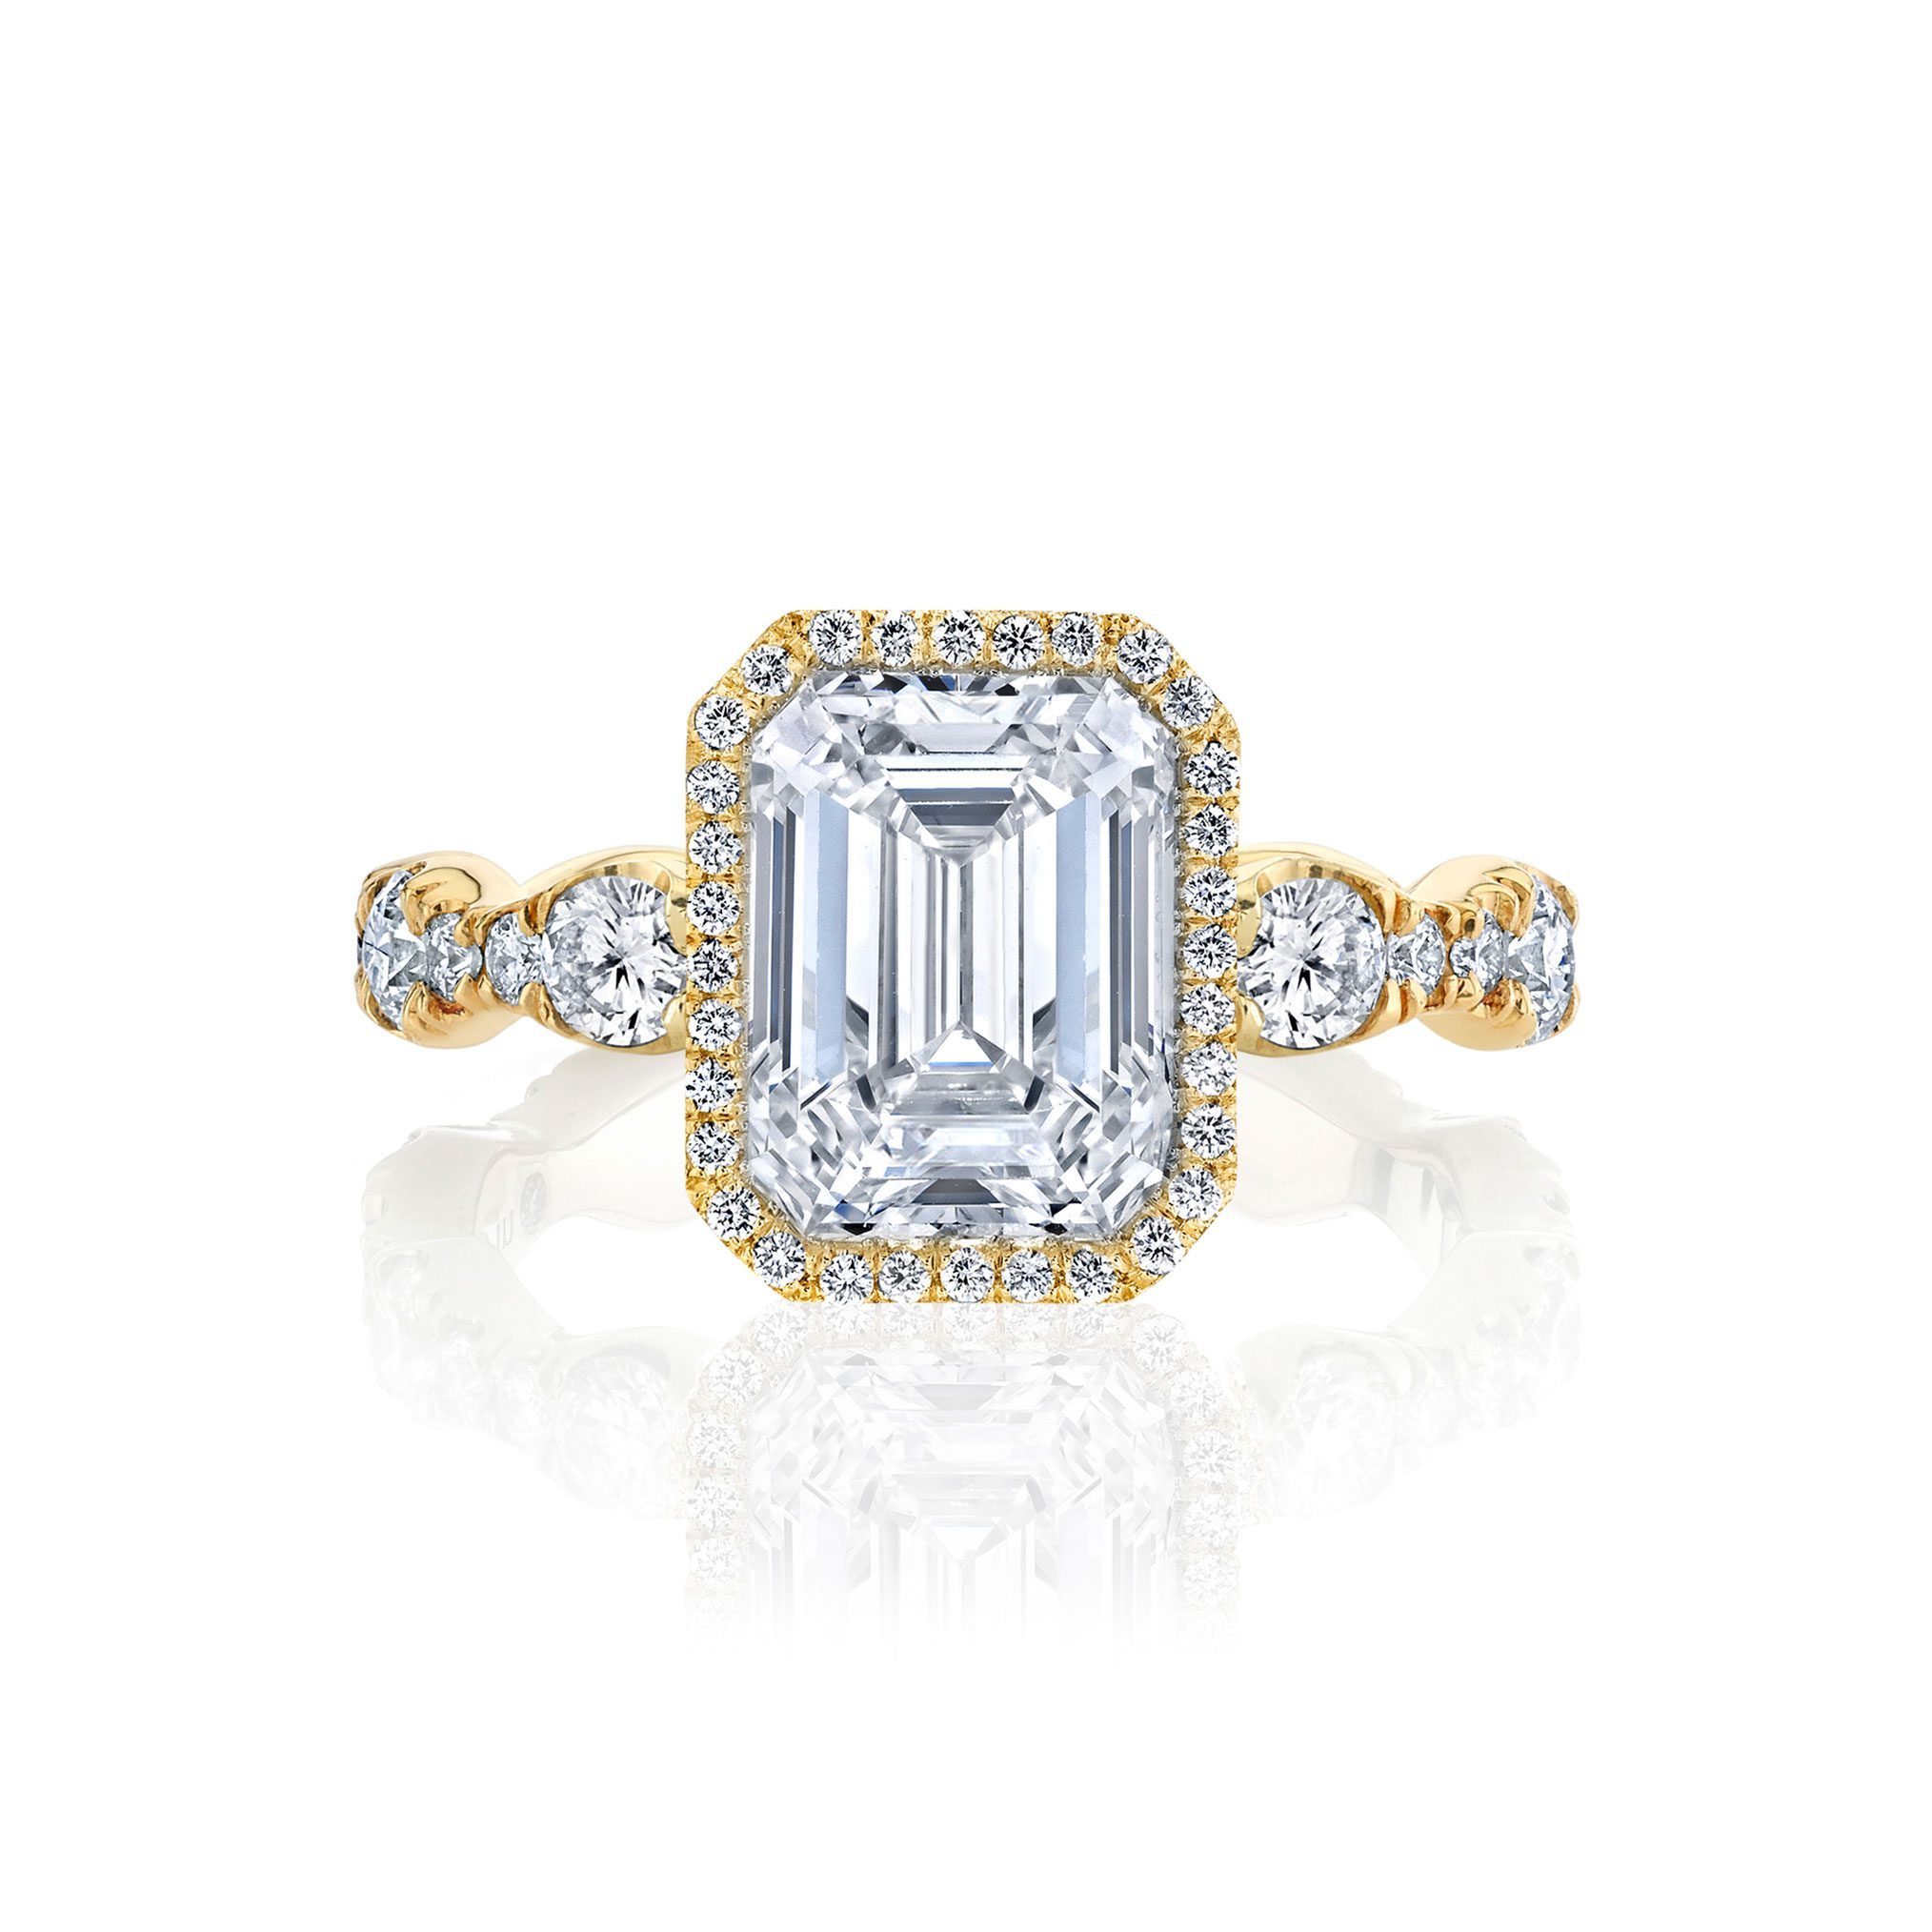 Yvonne Seamless Halo® Engagement Ring with Lab Grown Emerald Cut Diamond in 18k yellow gold